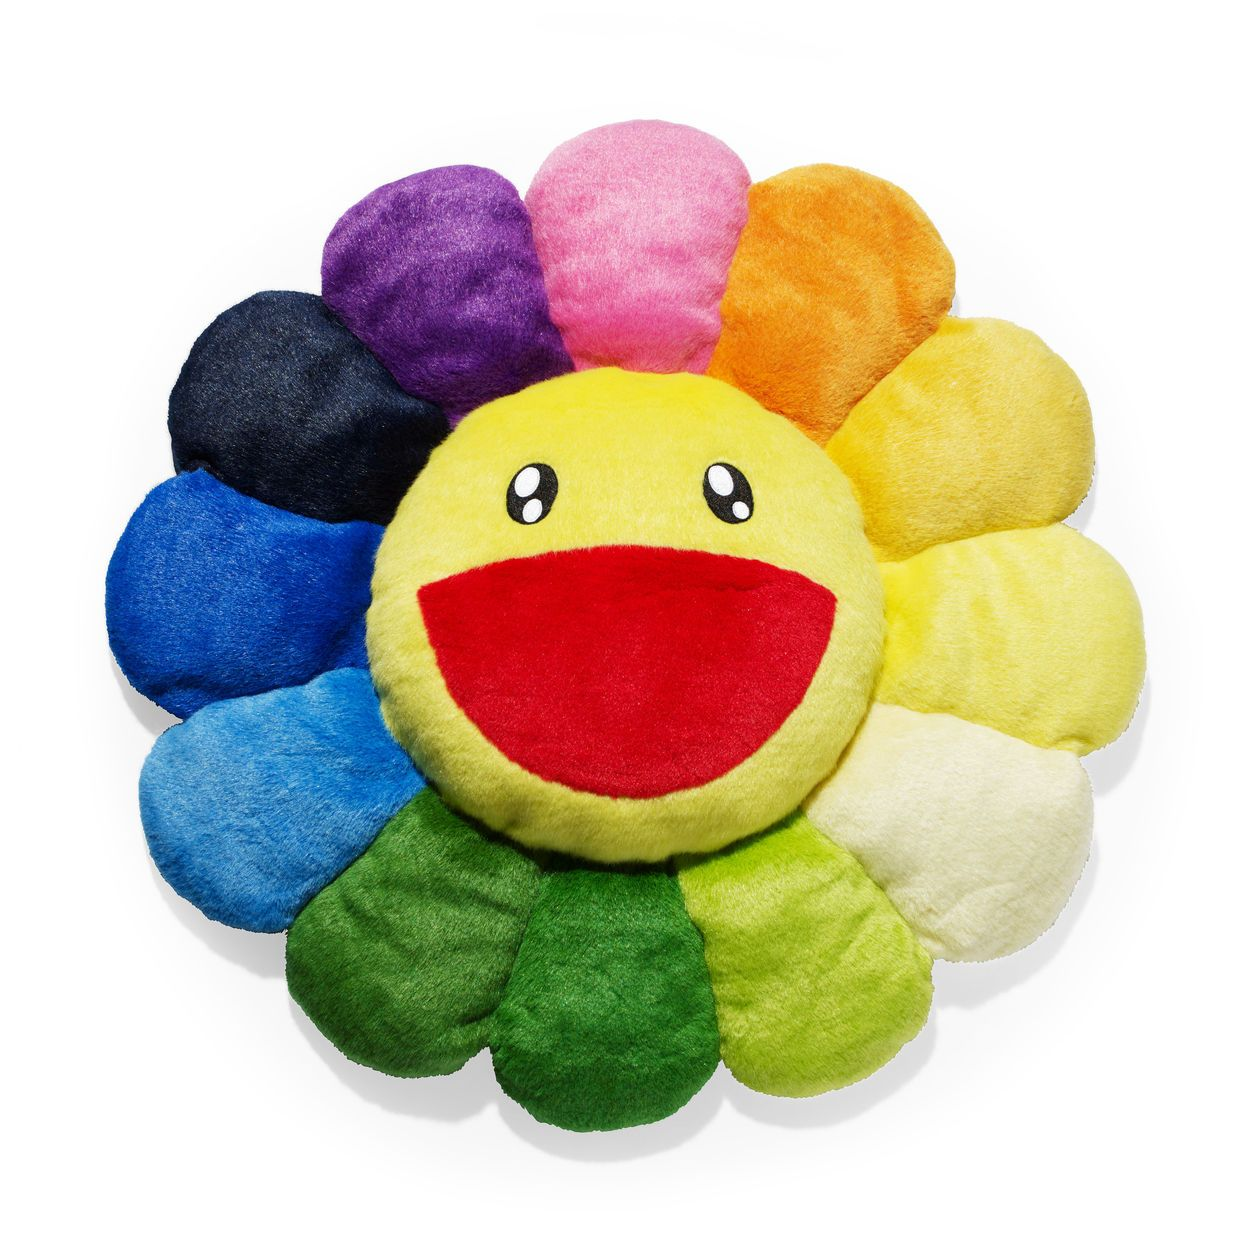 Plush Murakami Flower Cushion in color Murakami, Flower